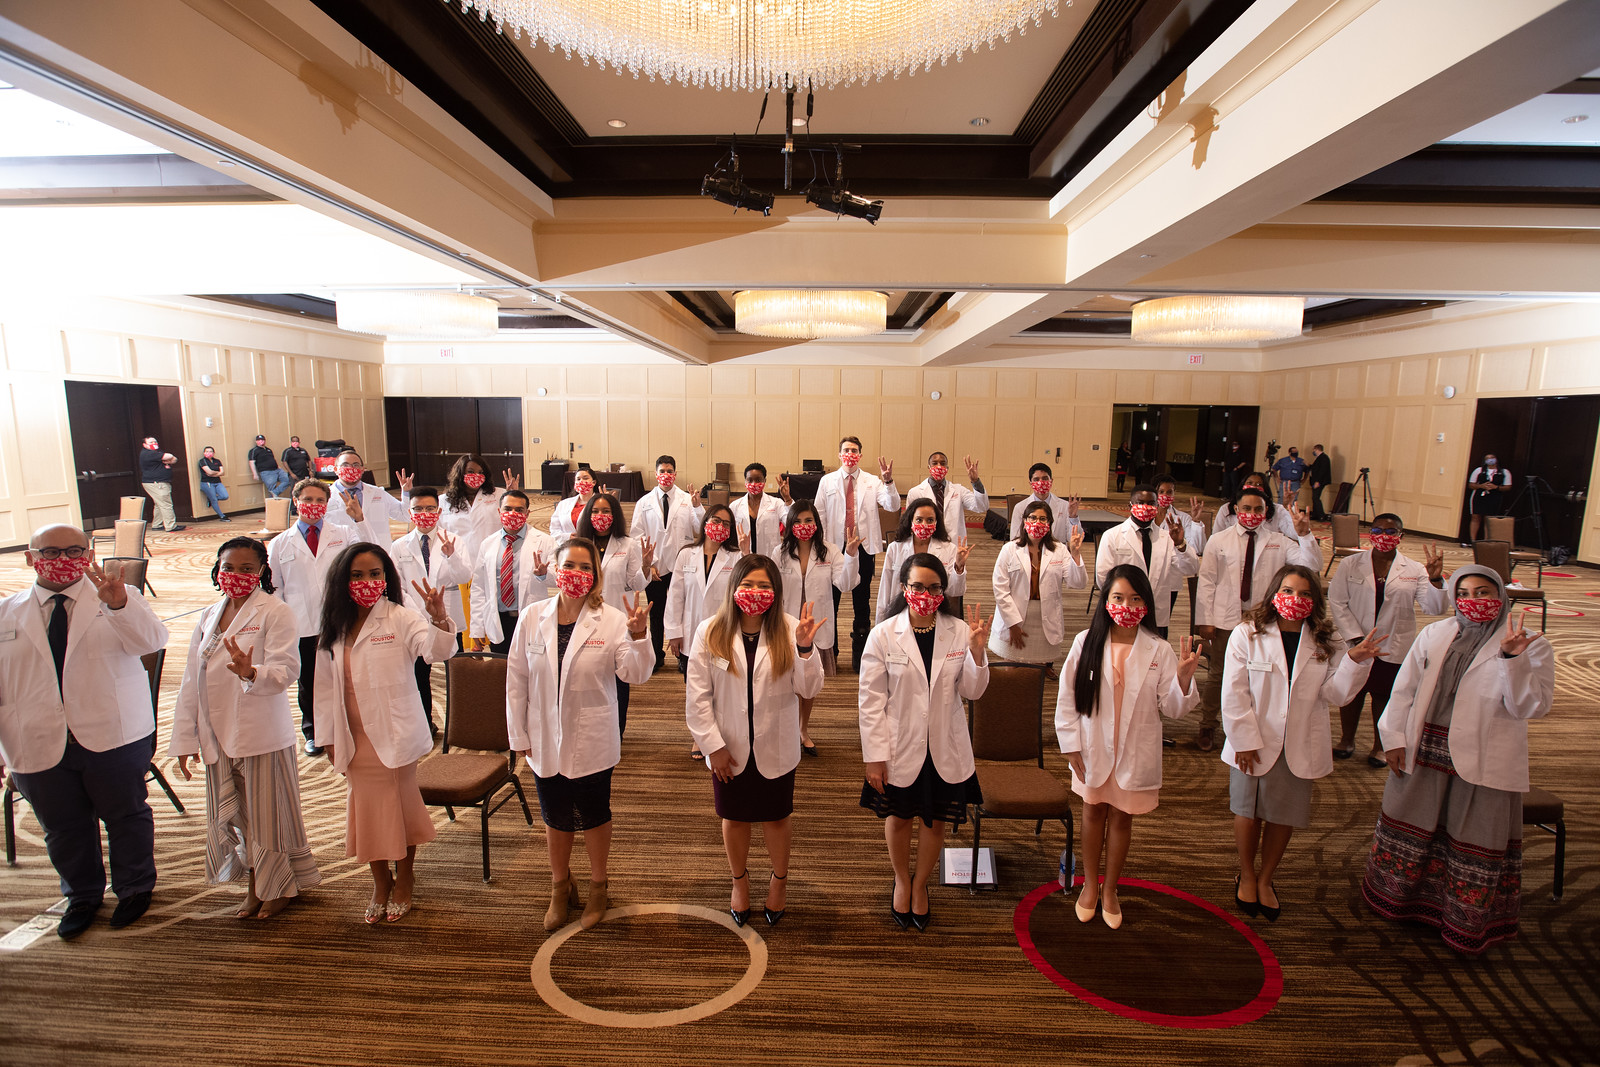 The University of Houston's College of Medicine holds a white coat ceremony to welcome its first incoming class on August 8, 2020.